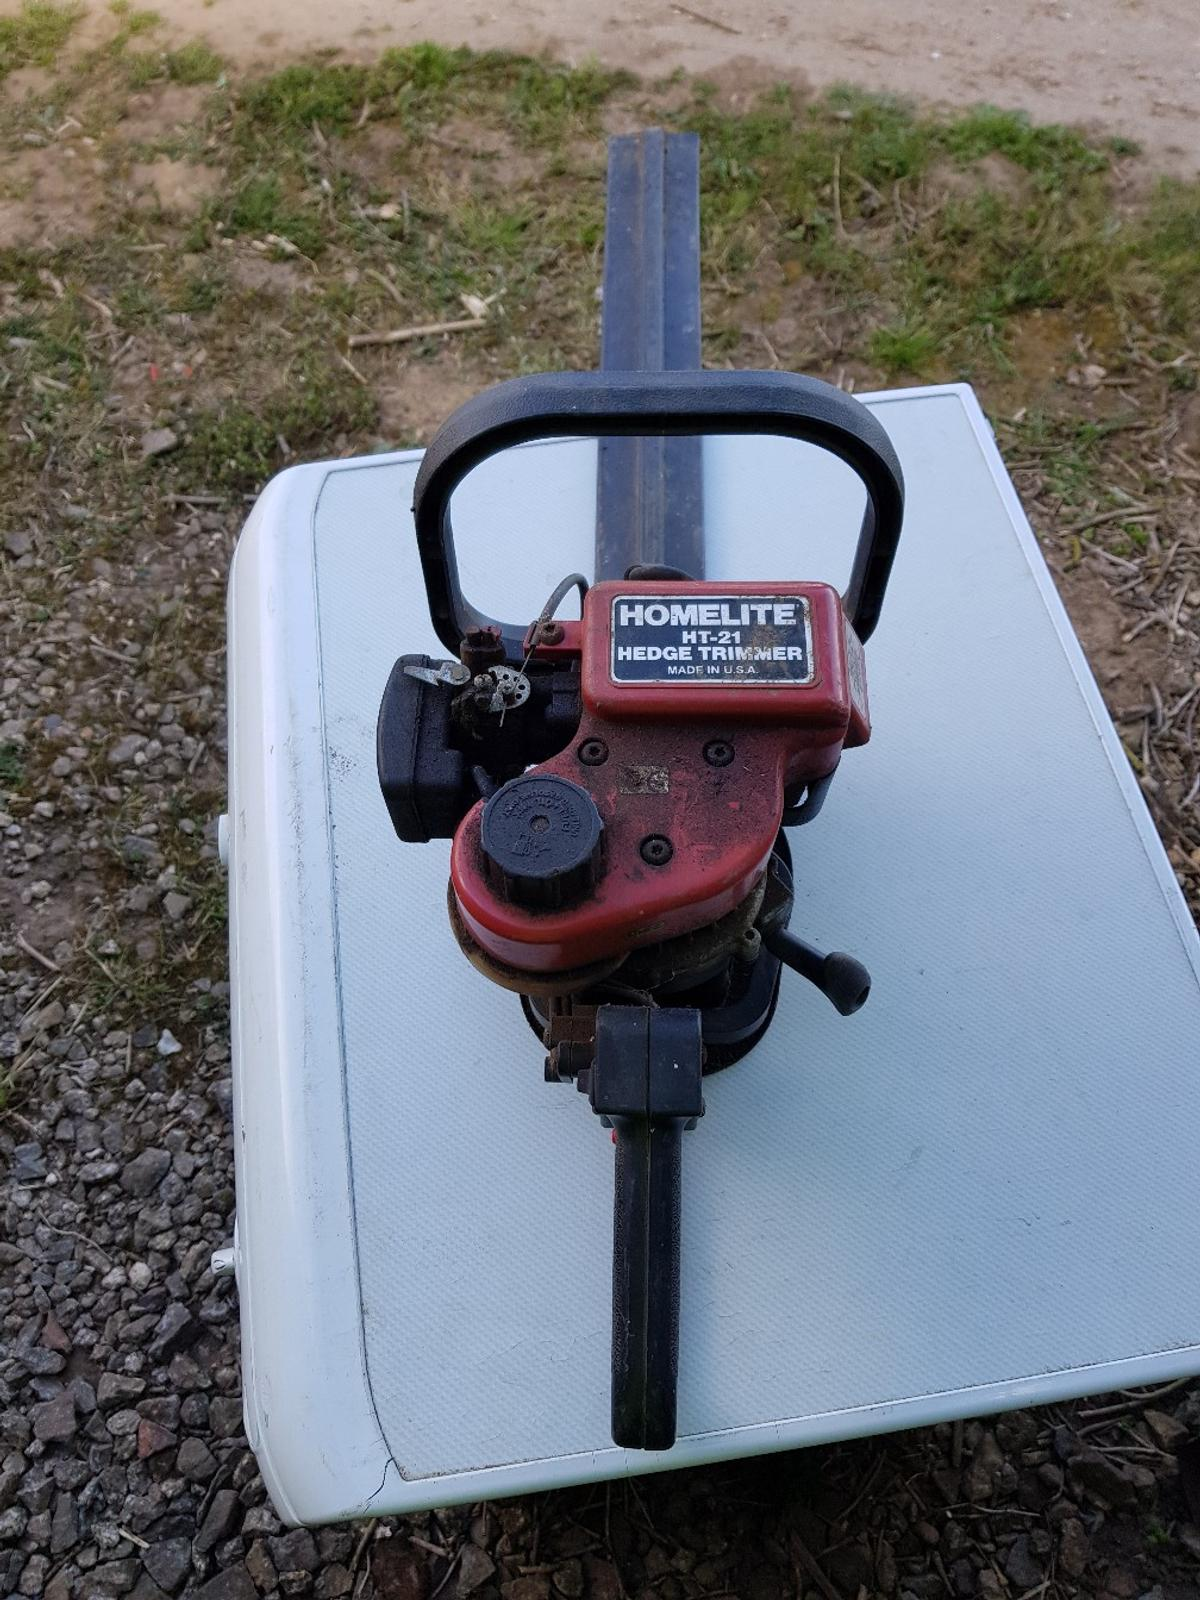 """Homelite HT-21 21"""" petrol hedge cutter. Last used about 10 years ago, when last used it leaked petrol. Sold as spares or repair. Collection only from PE12 (Holbeach) area. Cash on collection. Viewing welcome, although will insist on social distancing."""